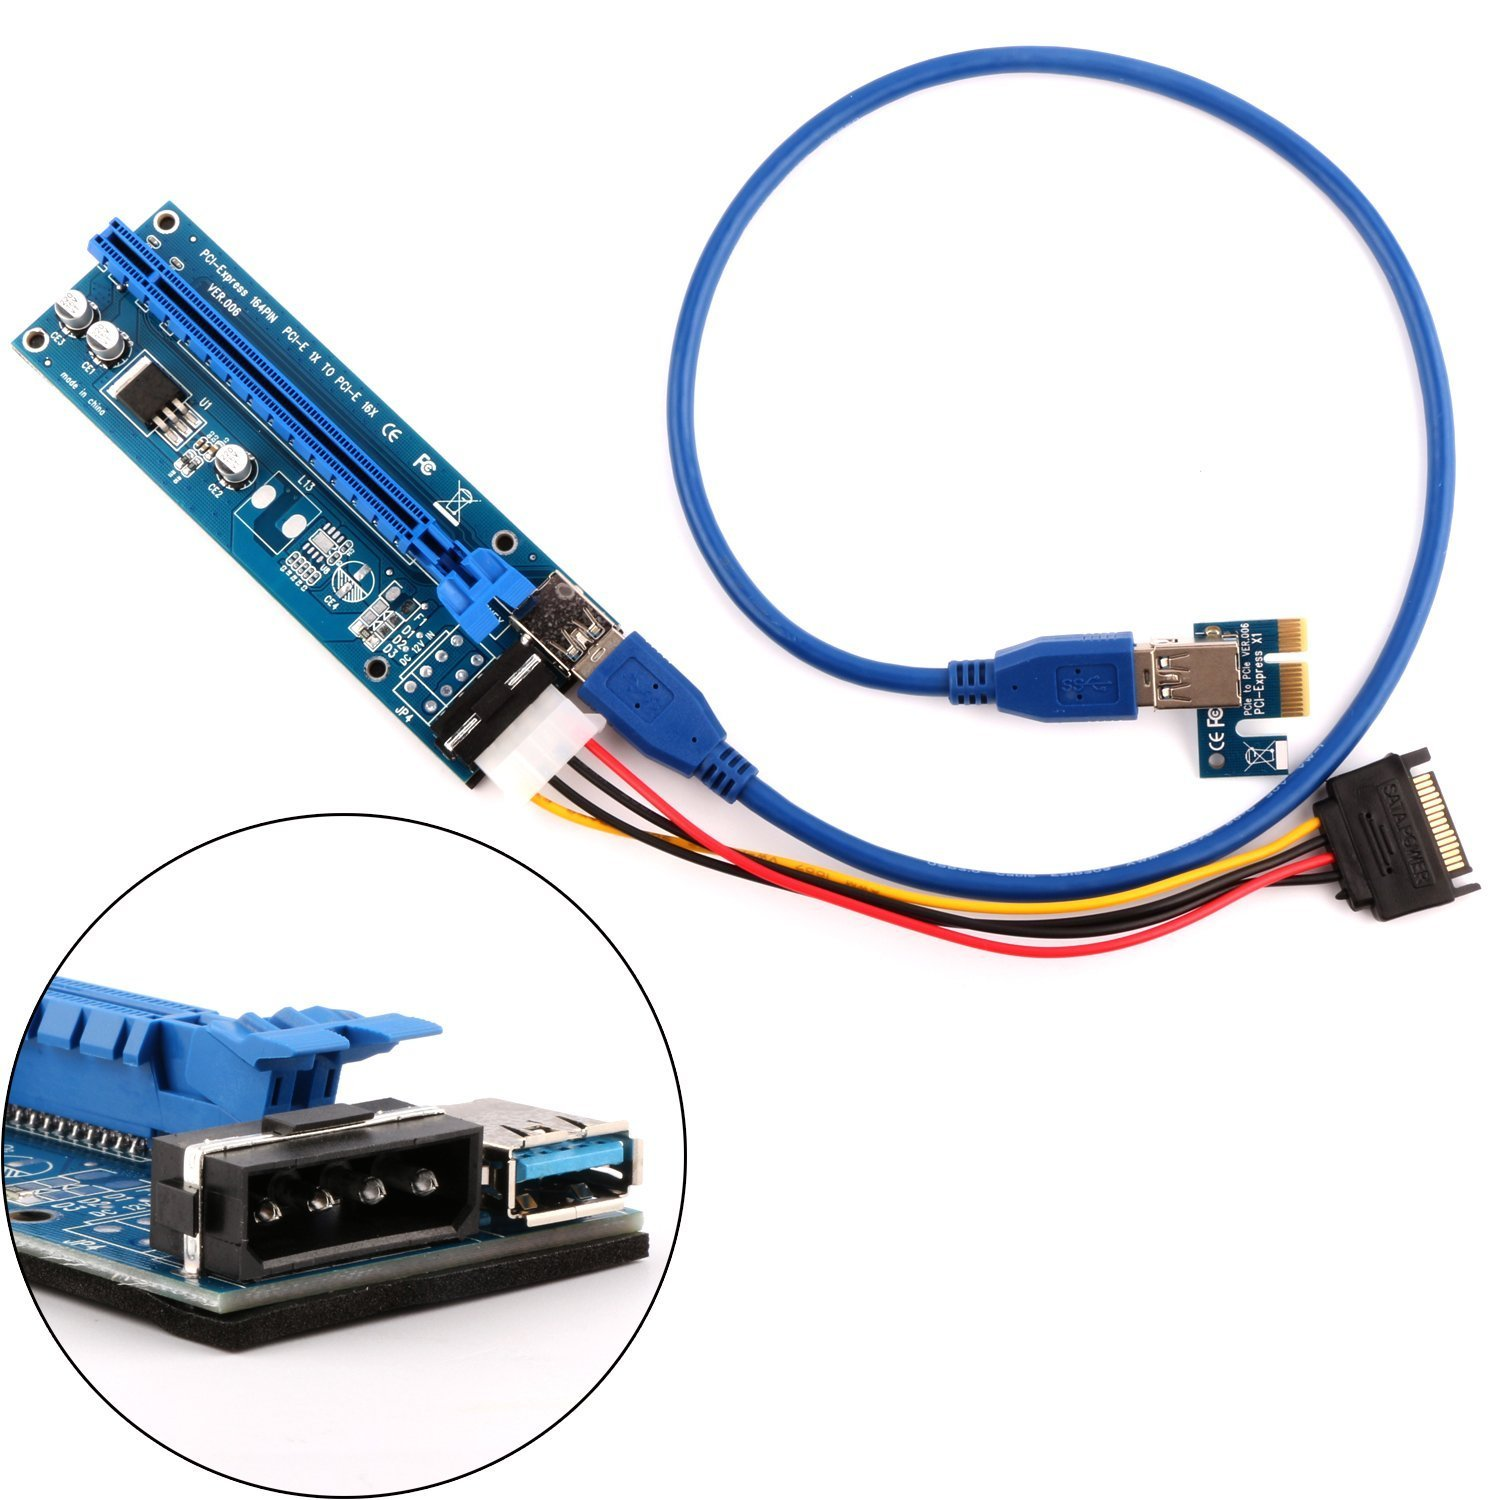 PowerStar PCIe VER 006 PCI-E 16x to 1x Powered Riser Adapter Card w/ / 60cm USB 3.0 Extension Cable & MOLEX to SATA Power Cable - GPU Riser Adapter - Mining ETH & Bitcoin (1 Pack)